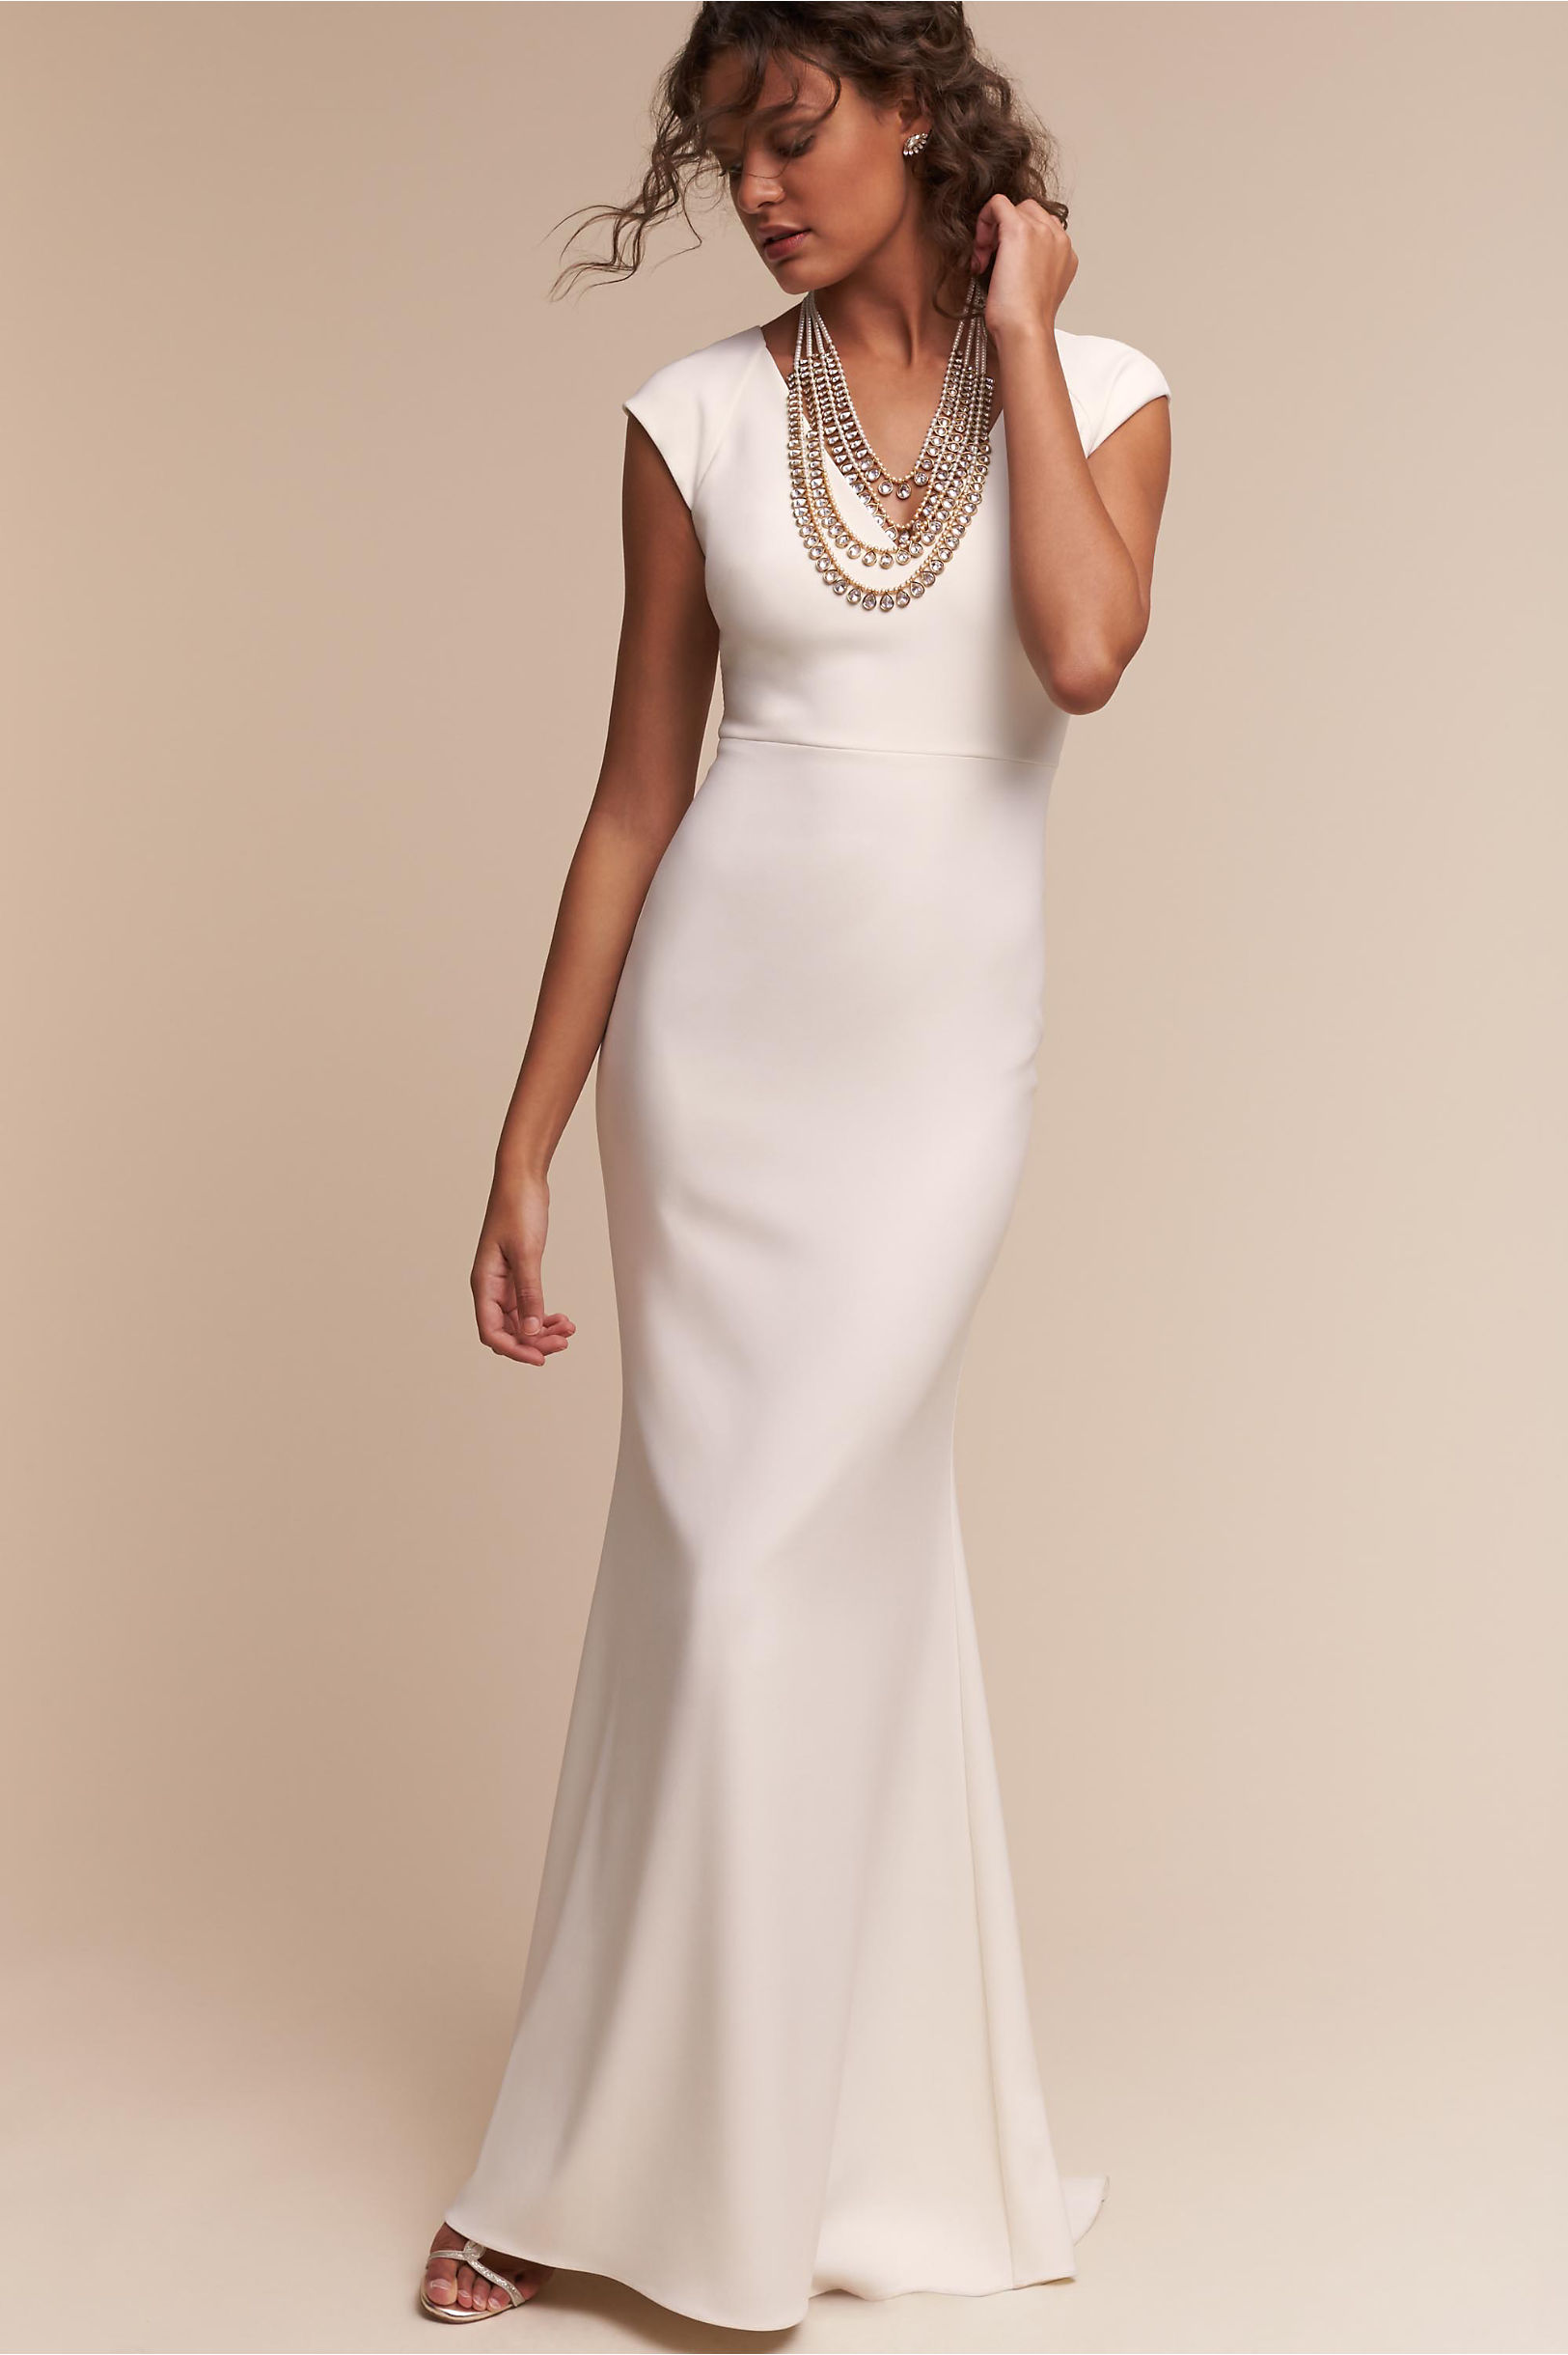 sawyer gown - $800.00